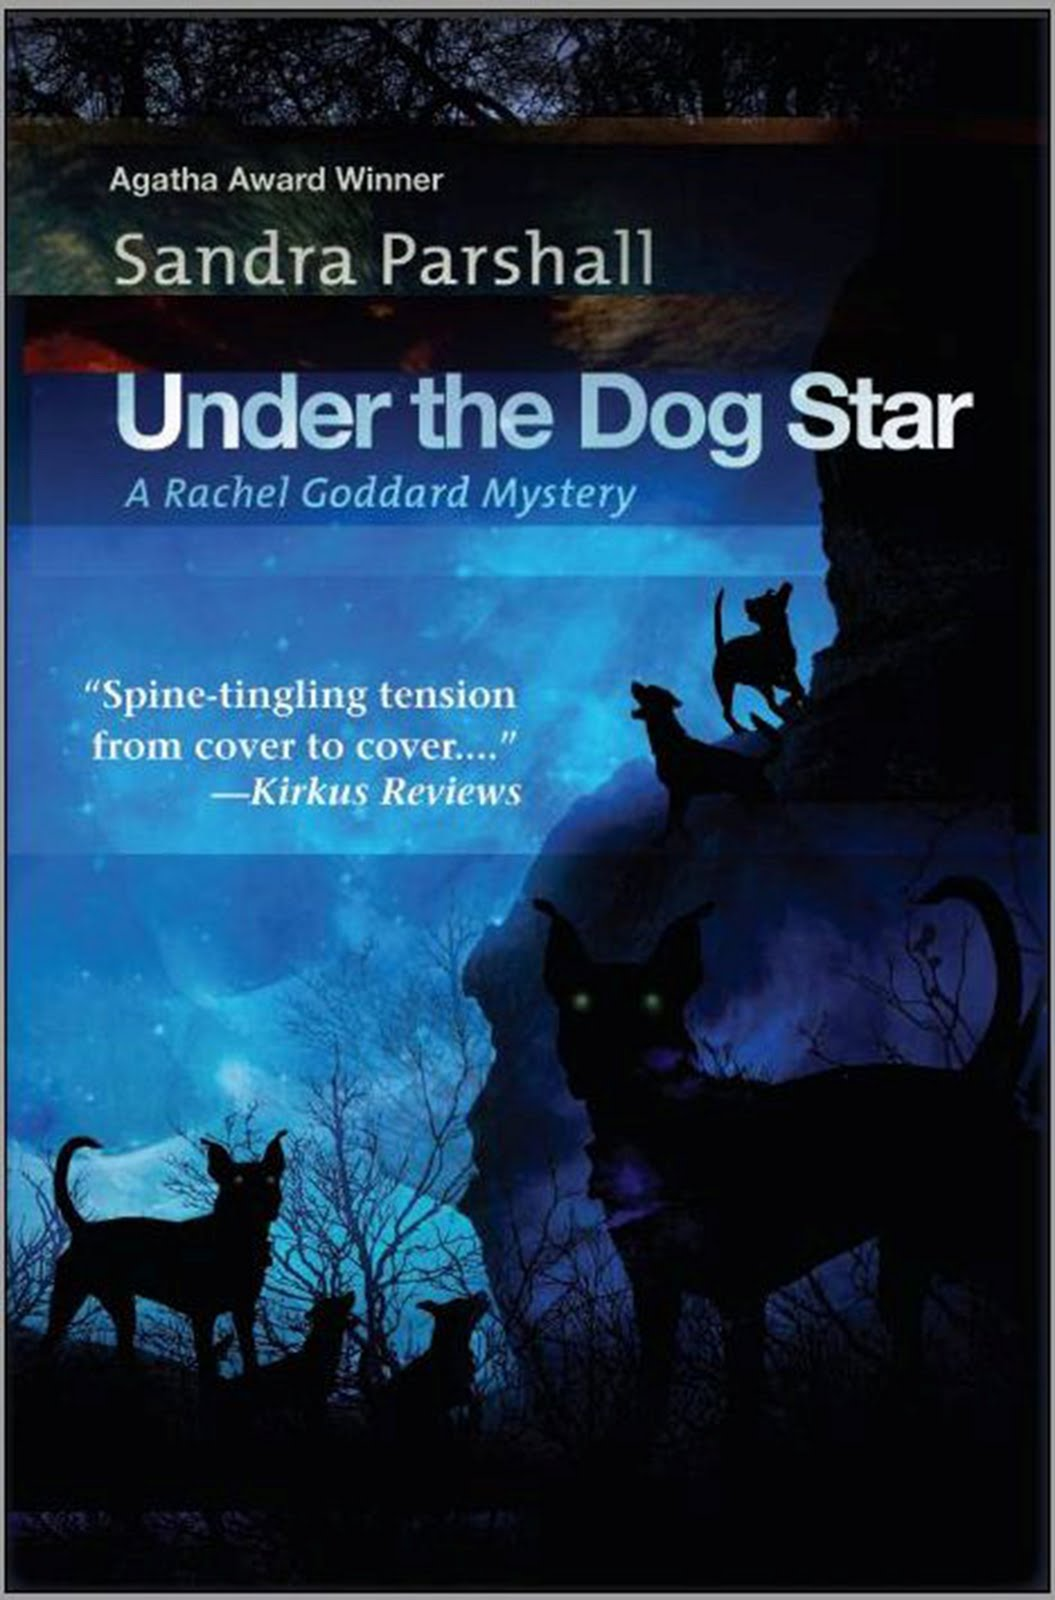 Interview with mystery author Sandra Parshall